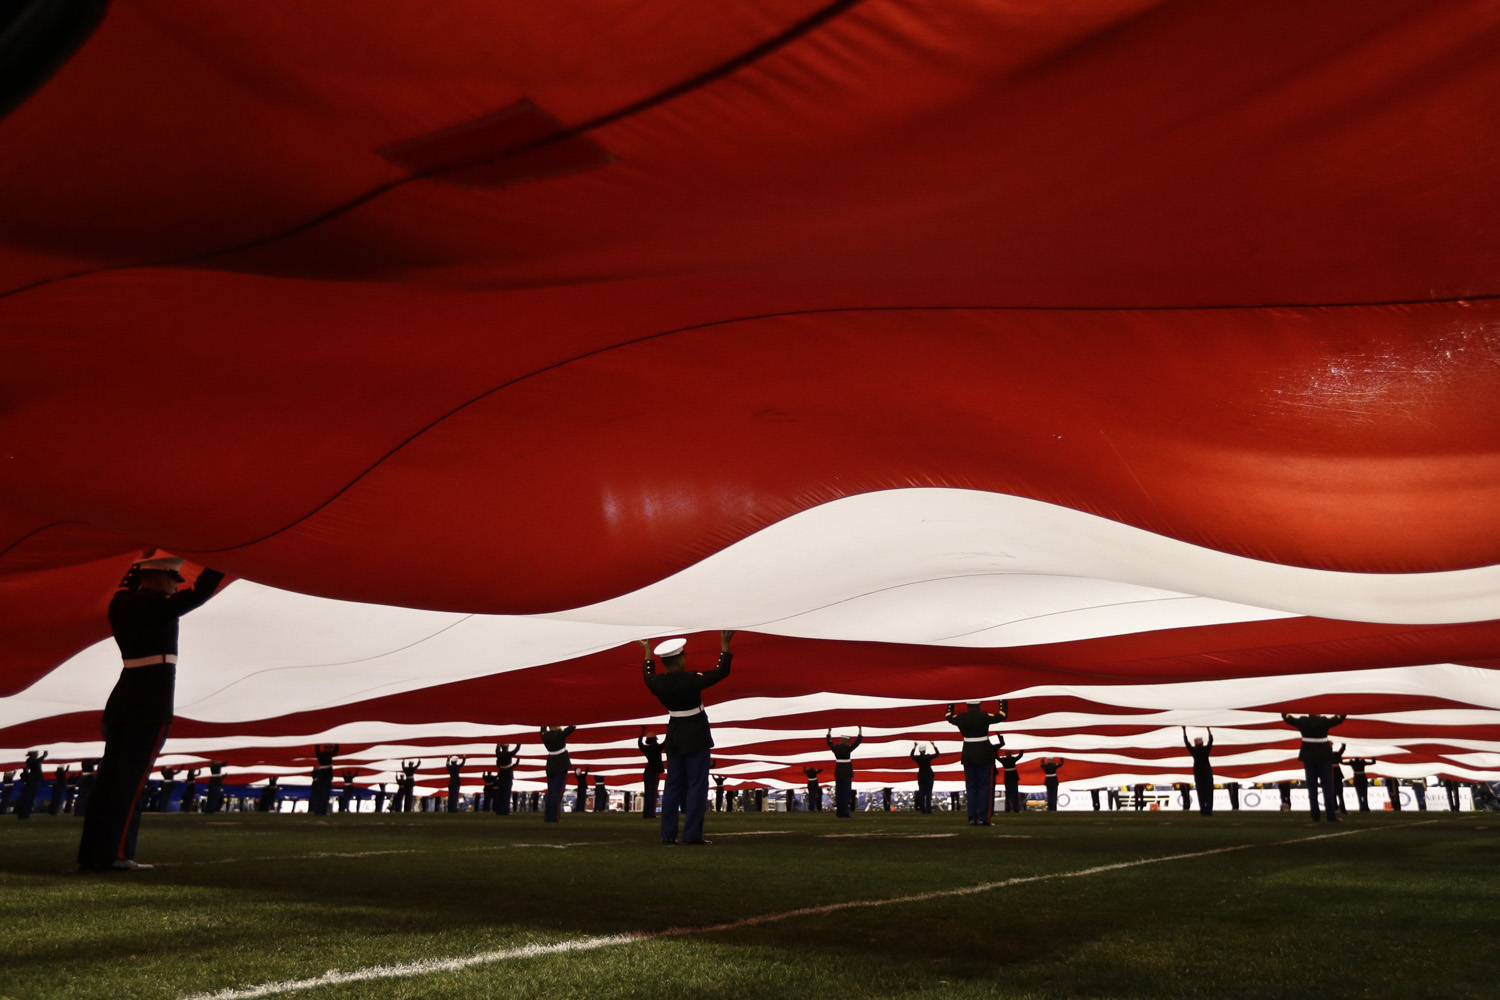 Dec. 30, 2013. United States Marines support a 100-yard American flag during pre-game ceremonies at the Holiday Bowl NCAA college football game in San Diego.